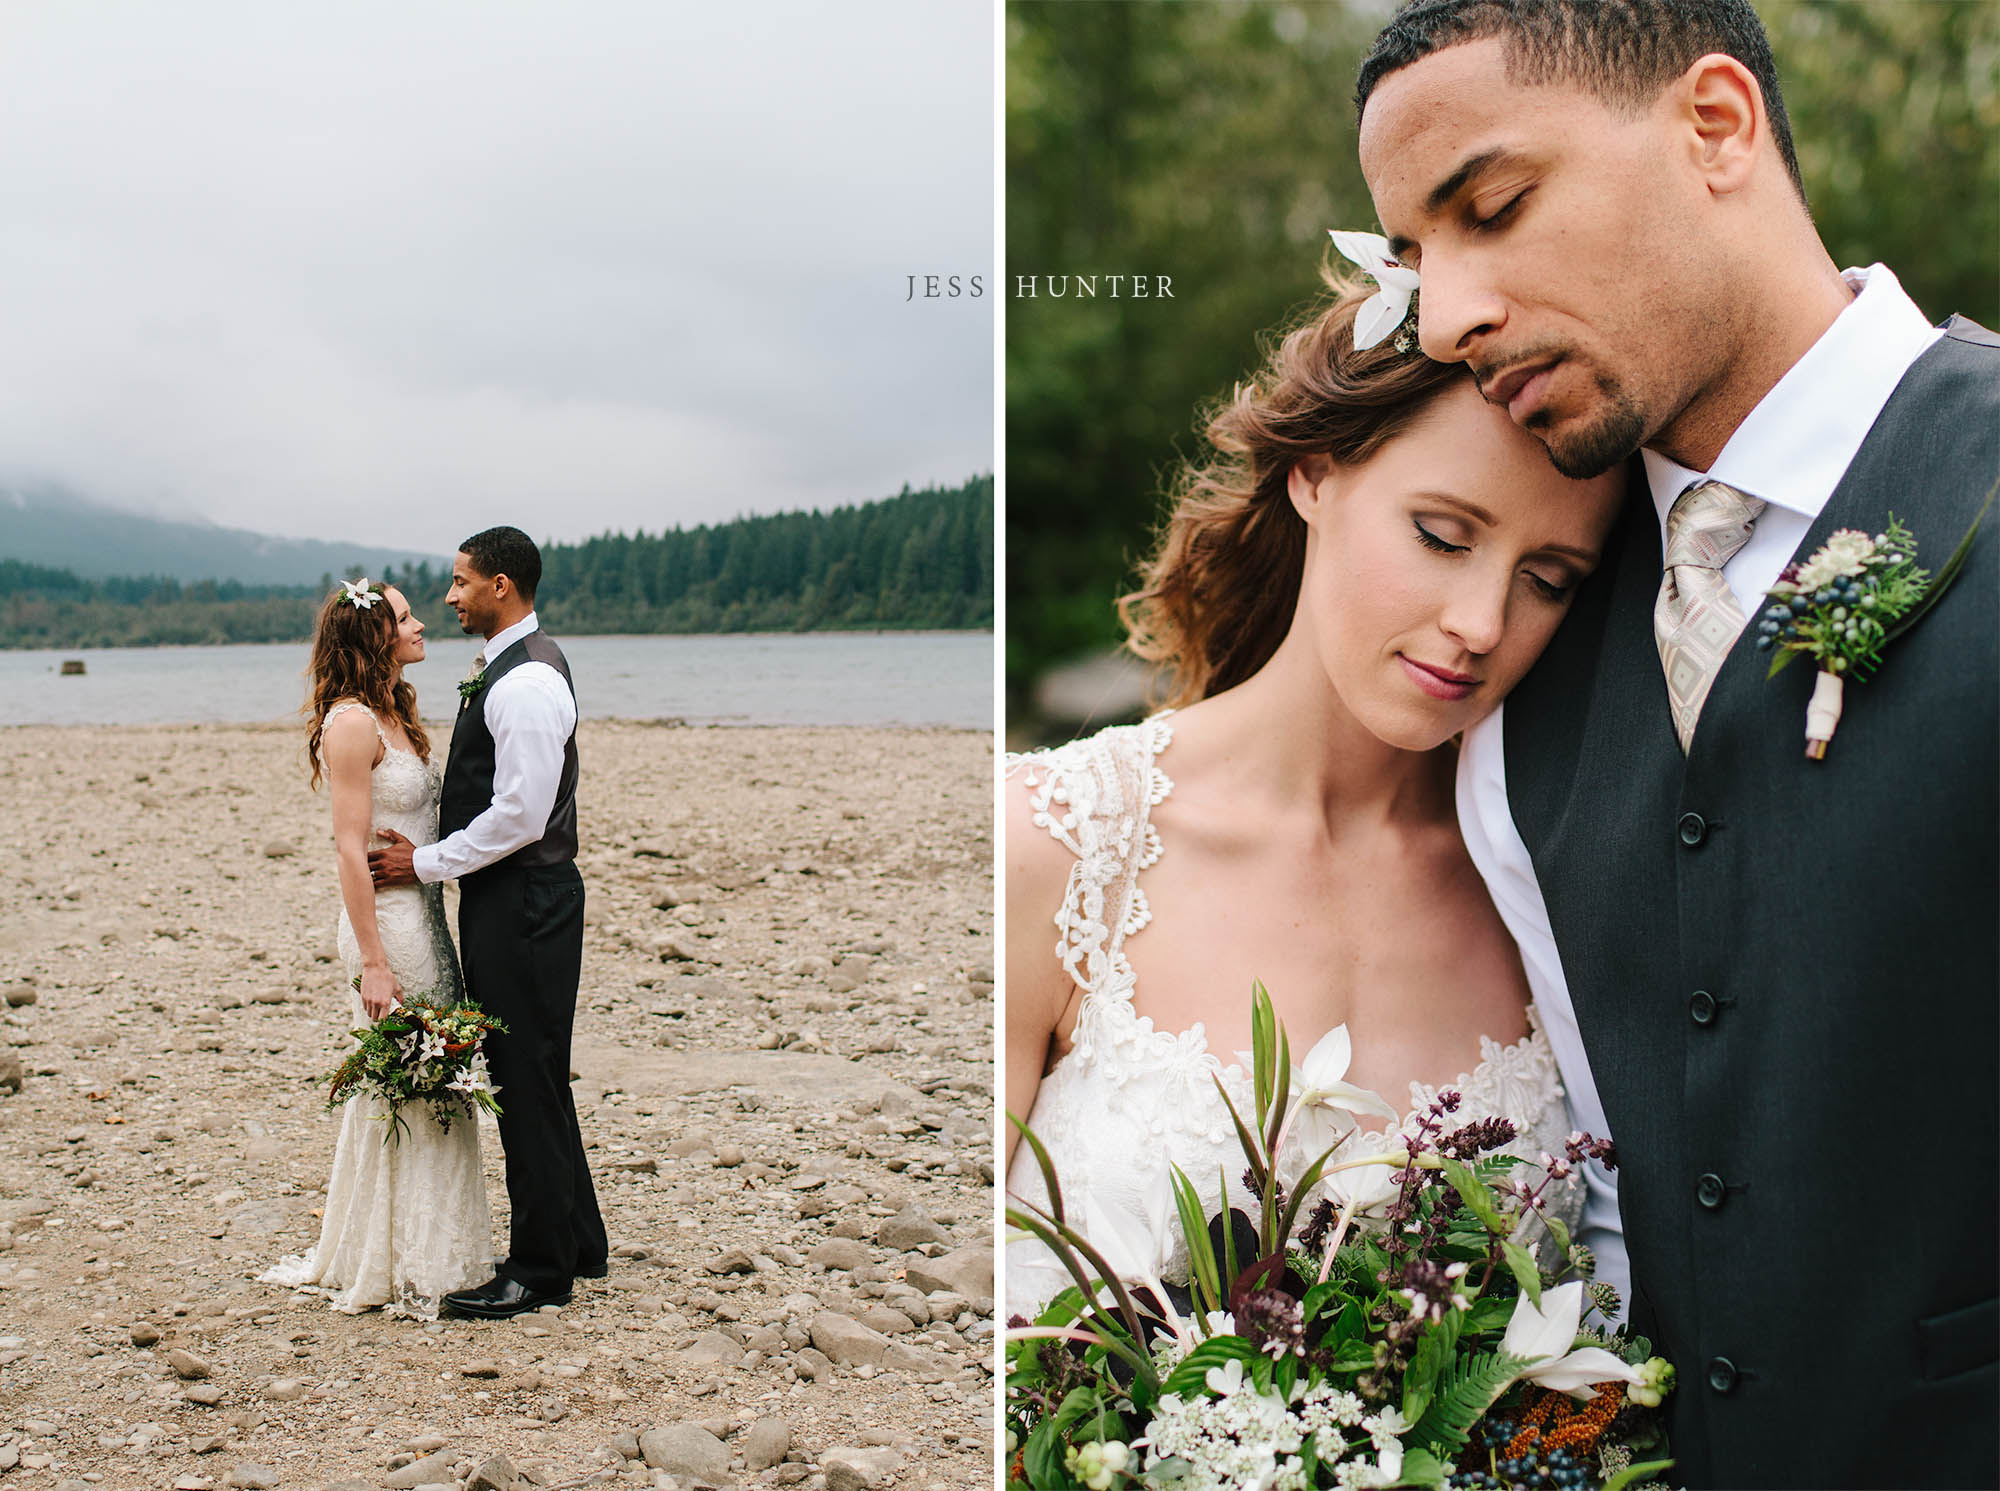 seattle wedding photographer, jessica hunter, jess hunter photography